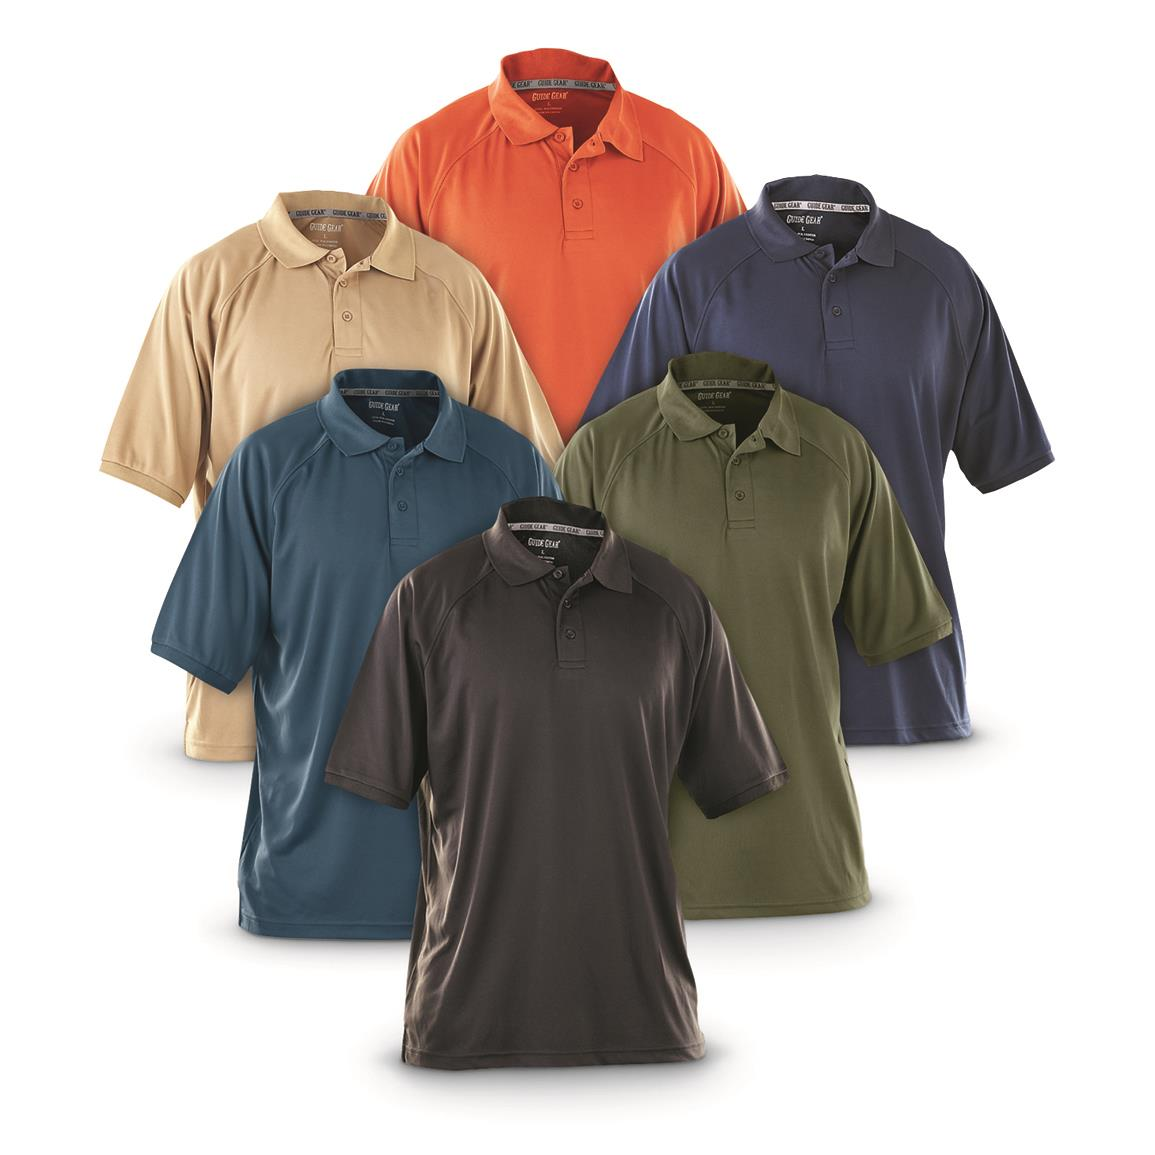 Guide Gear Men's Performance Short Sleeve Polo Shirt